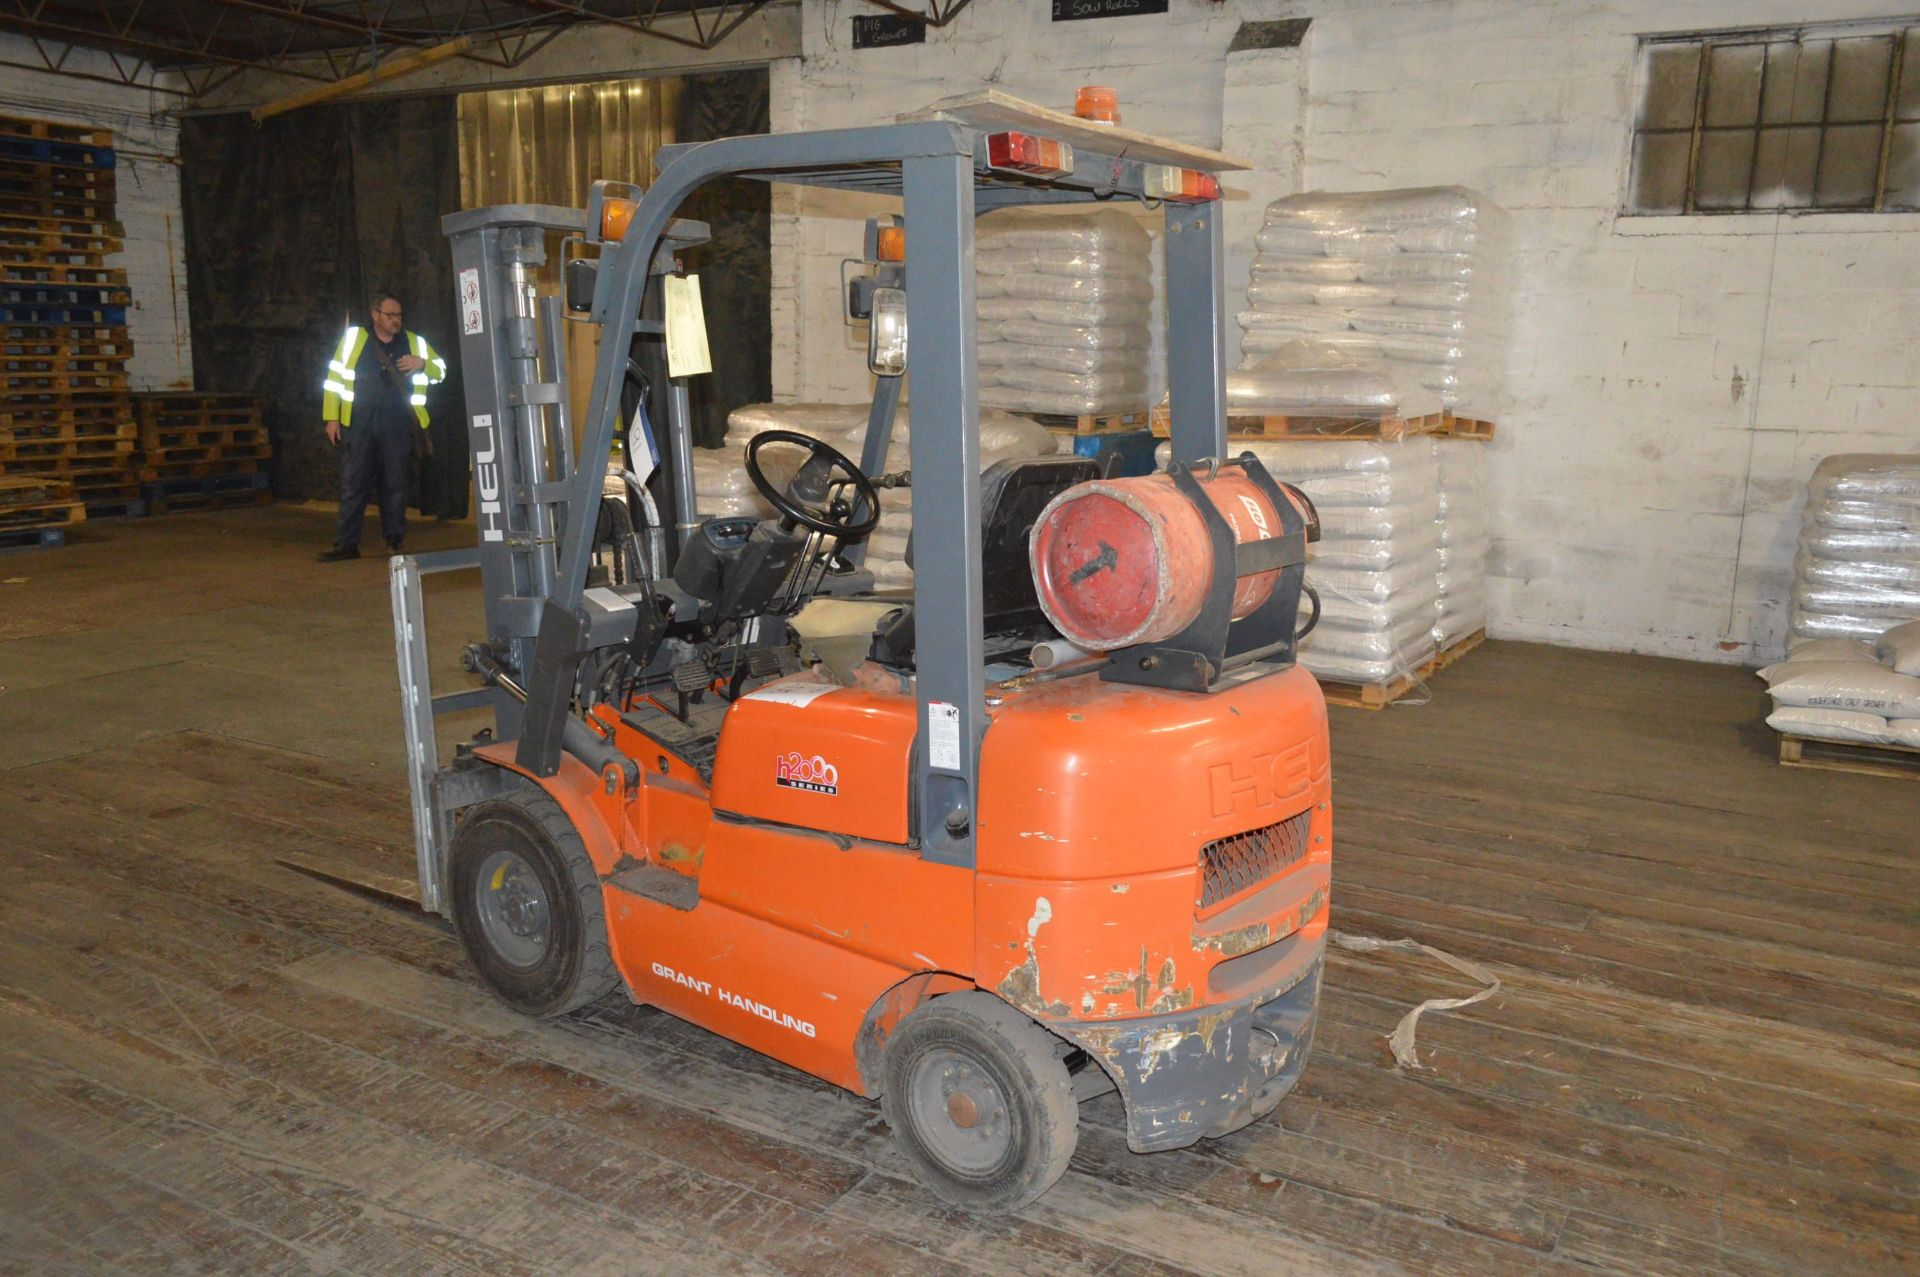 Lot 191 - Heli HFG15 H2000 SERIES 1500kg LPG ENGINE FORK LIFT TRUCK, serial no. 78330, year of manufacture